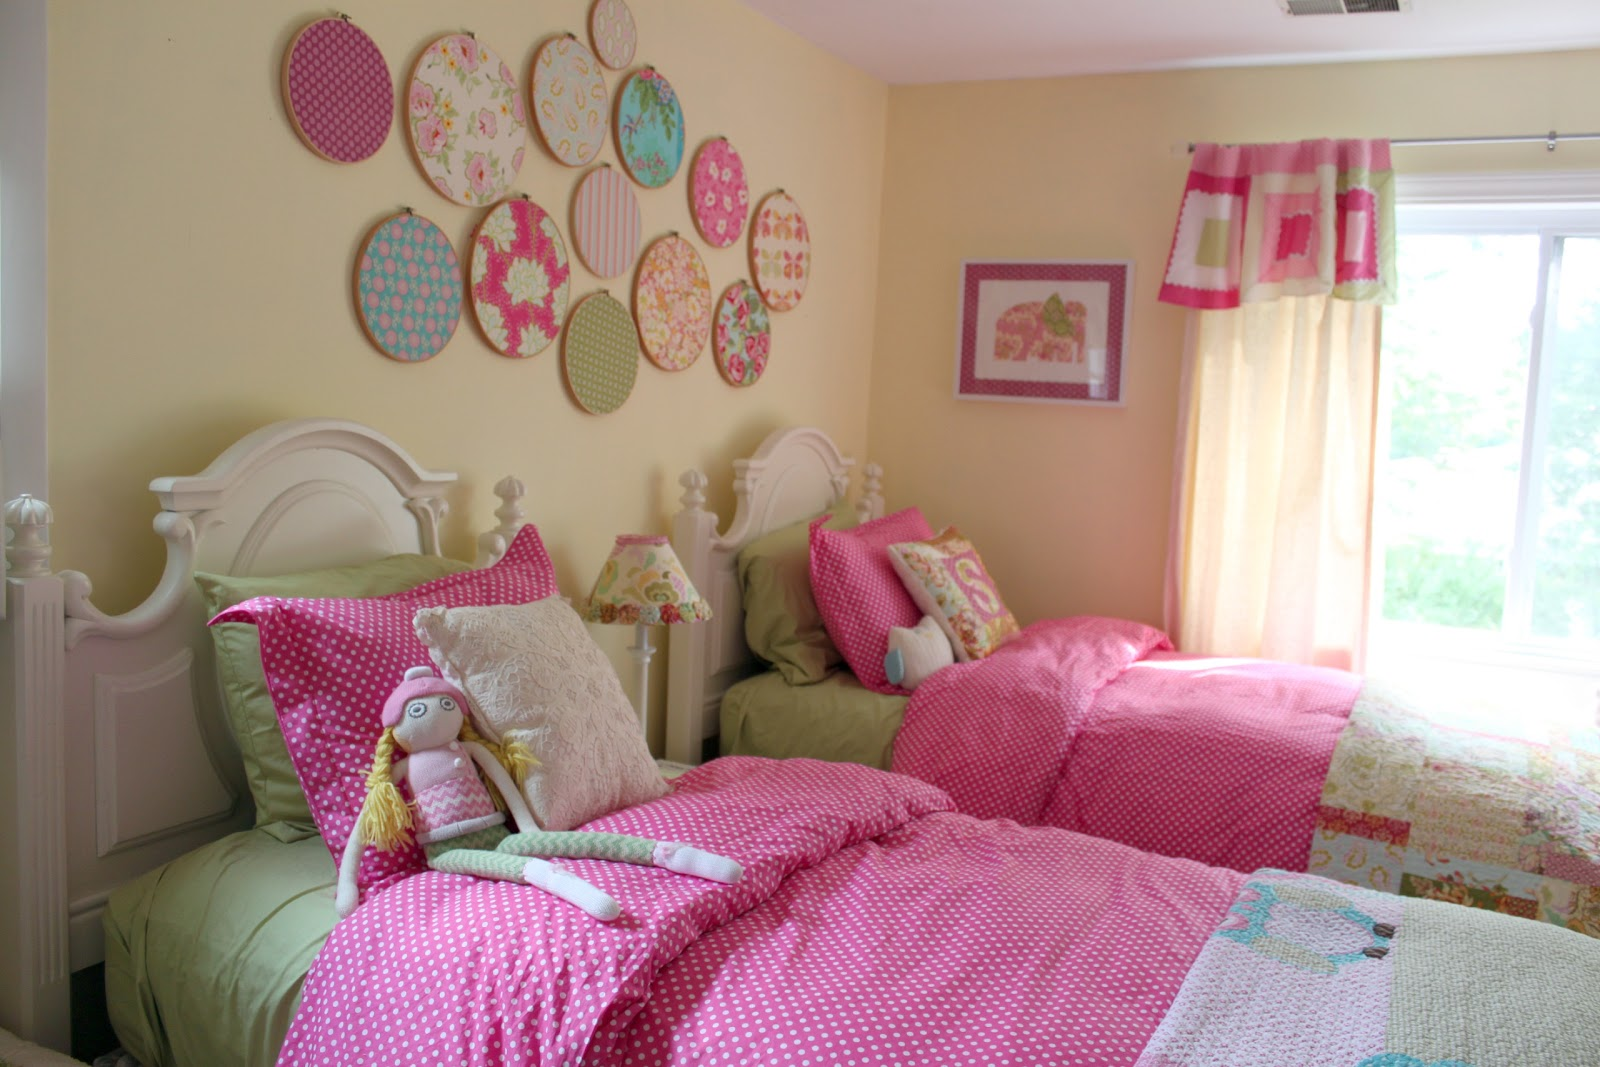 Office interior design image decorating girls shared for Girls bedroom designs images